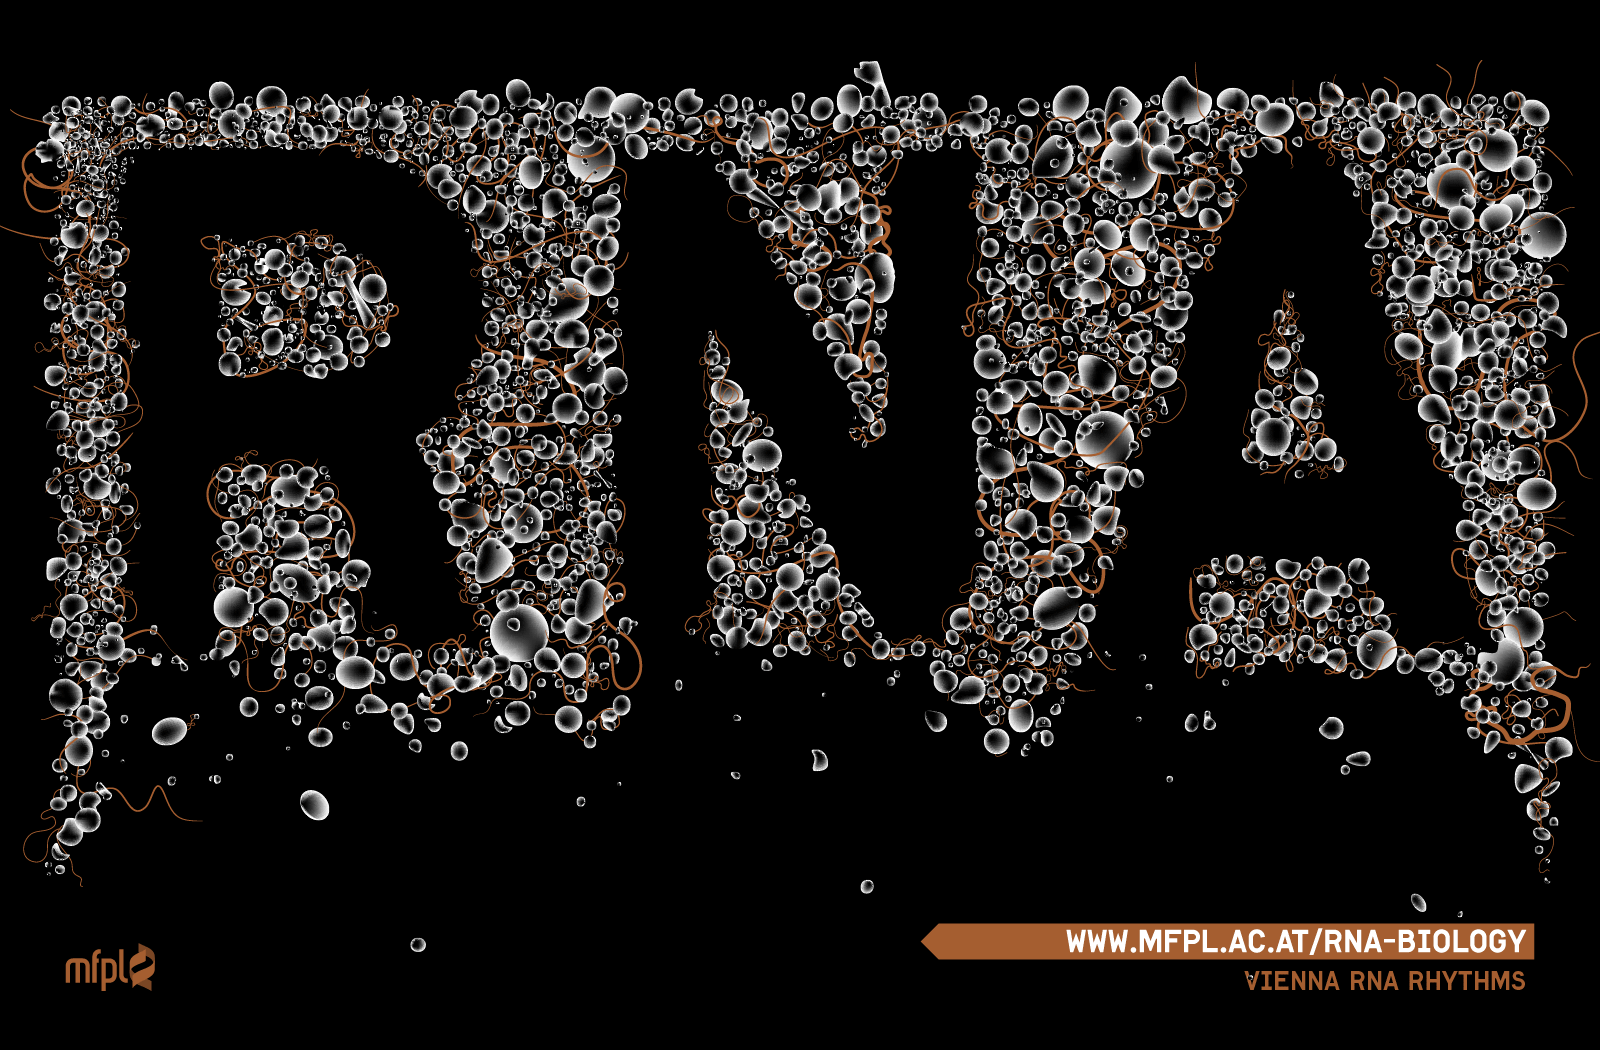 ... rna biology wallpaper png 1600 1050 rna biology wallpaper png see more